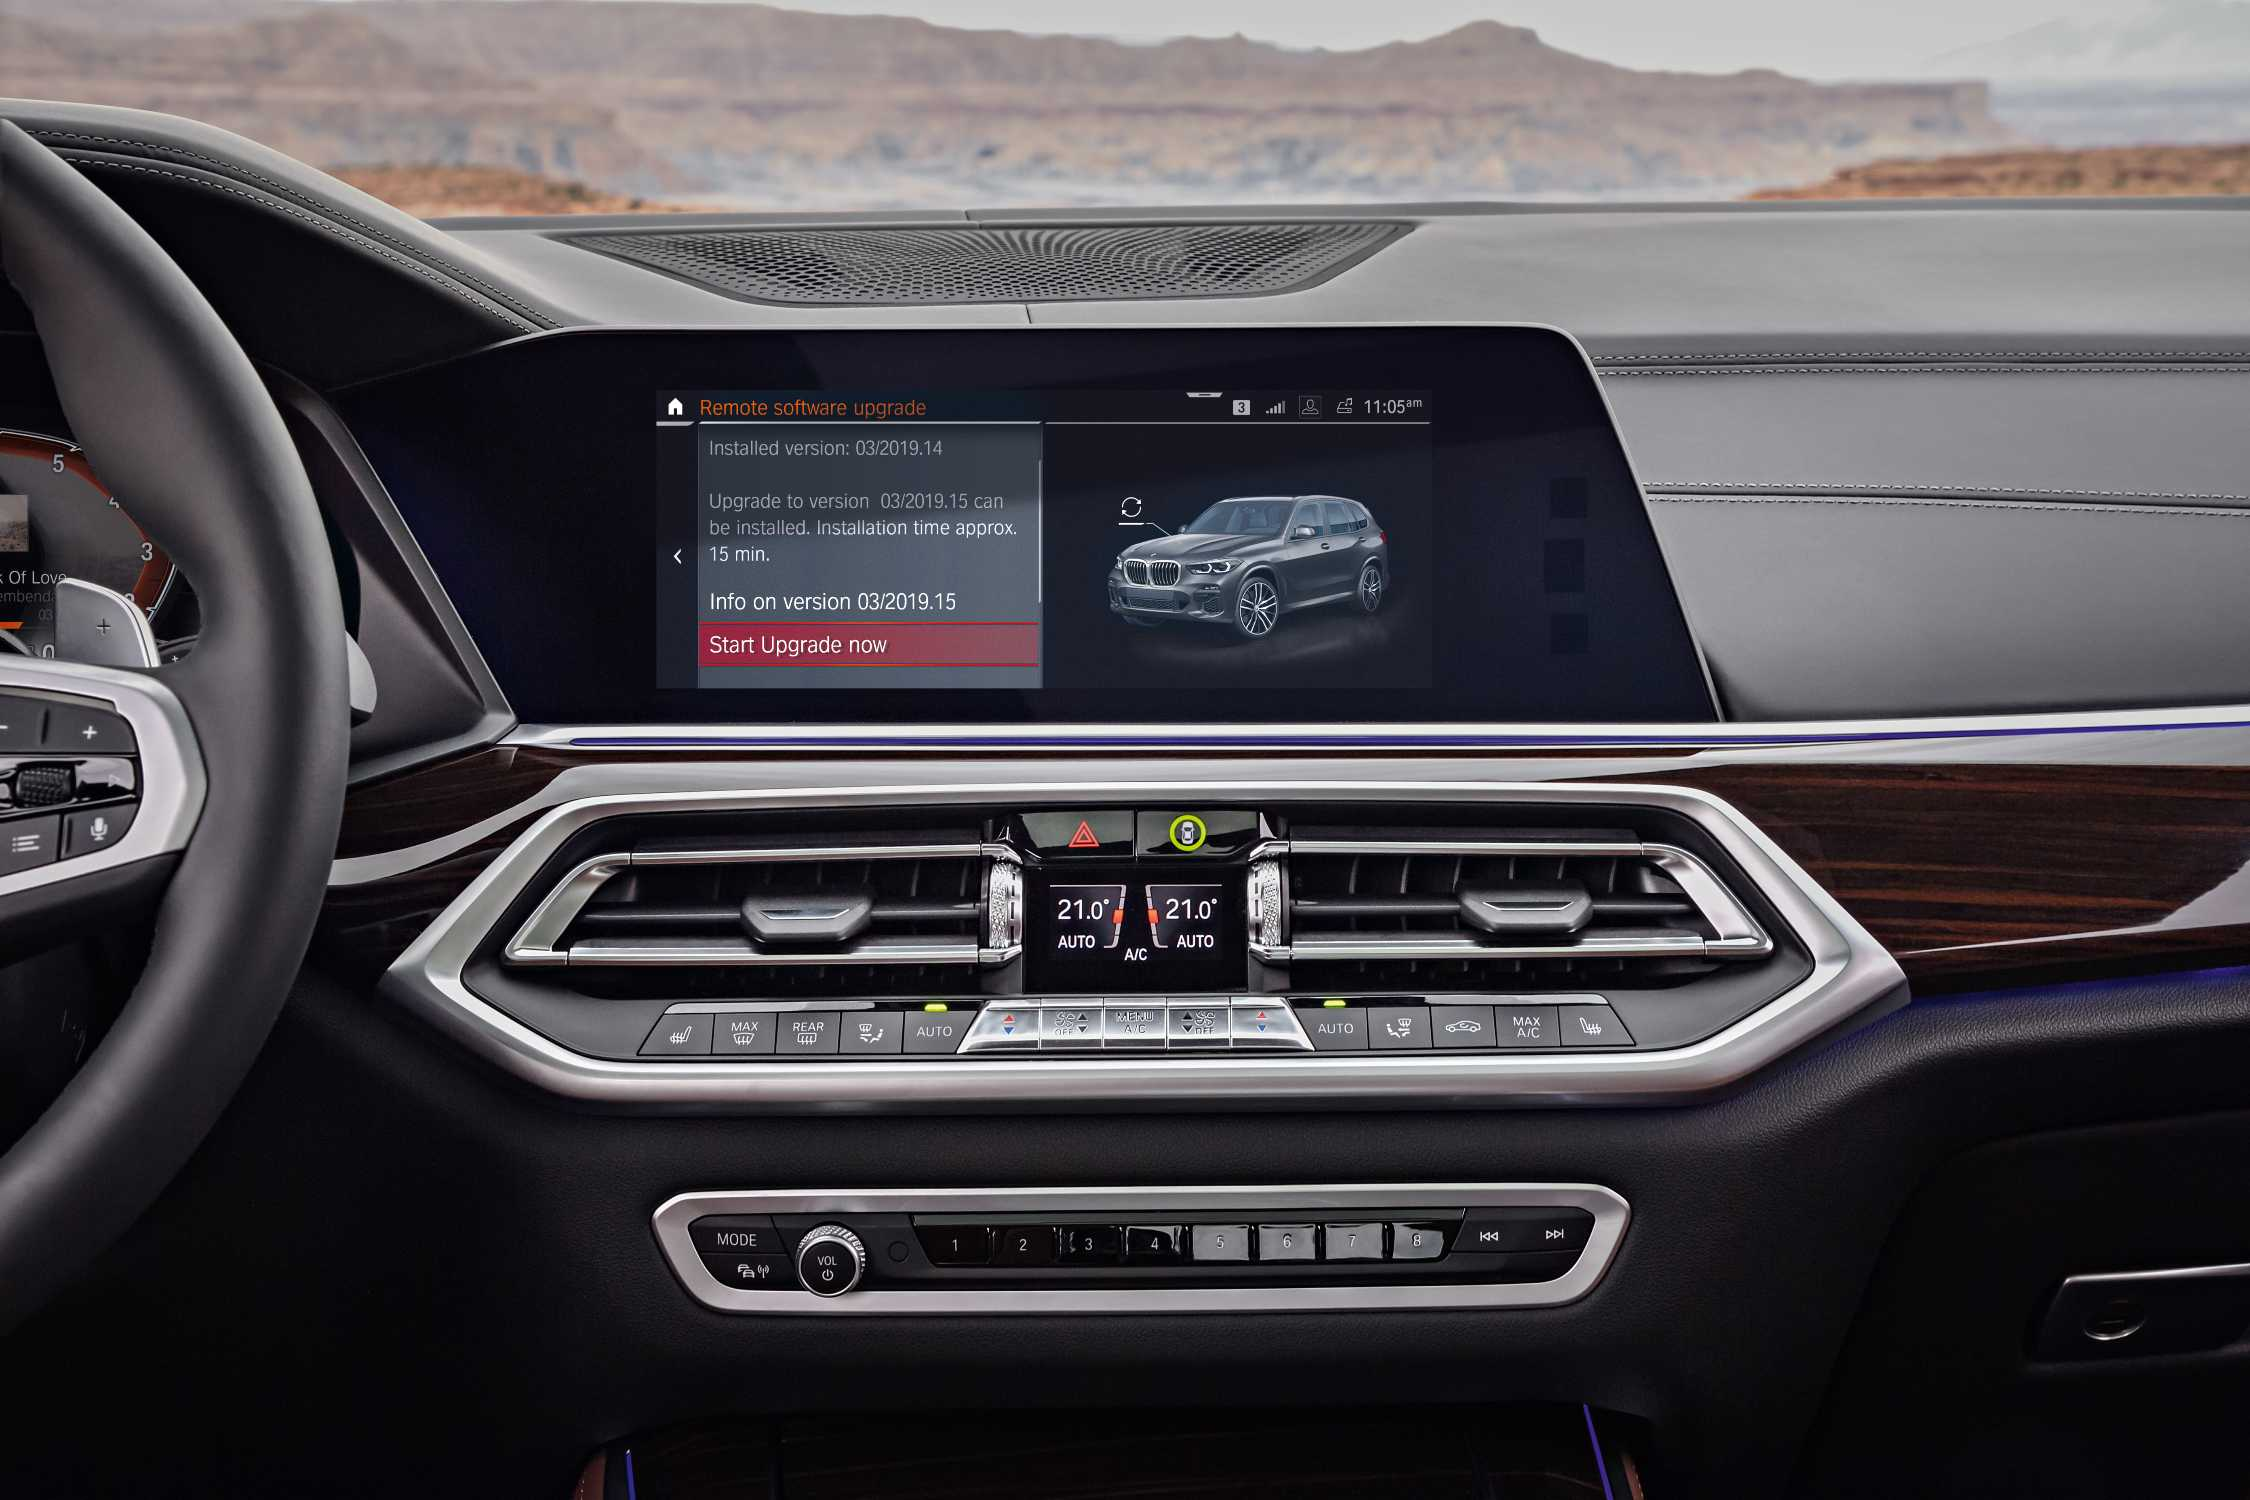 BMW Software Update >> The All New Bmw X5 Bmw Digital Services Remote Software